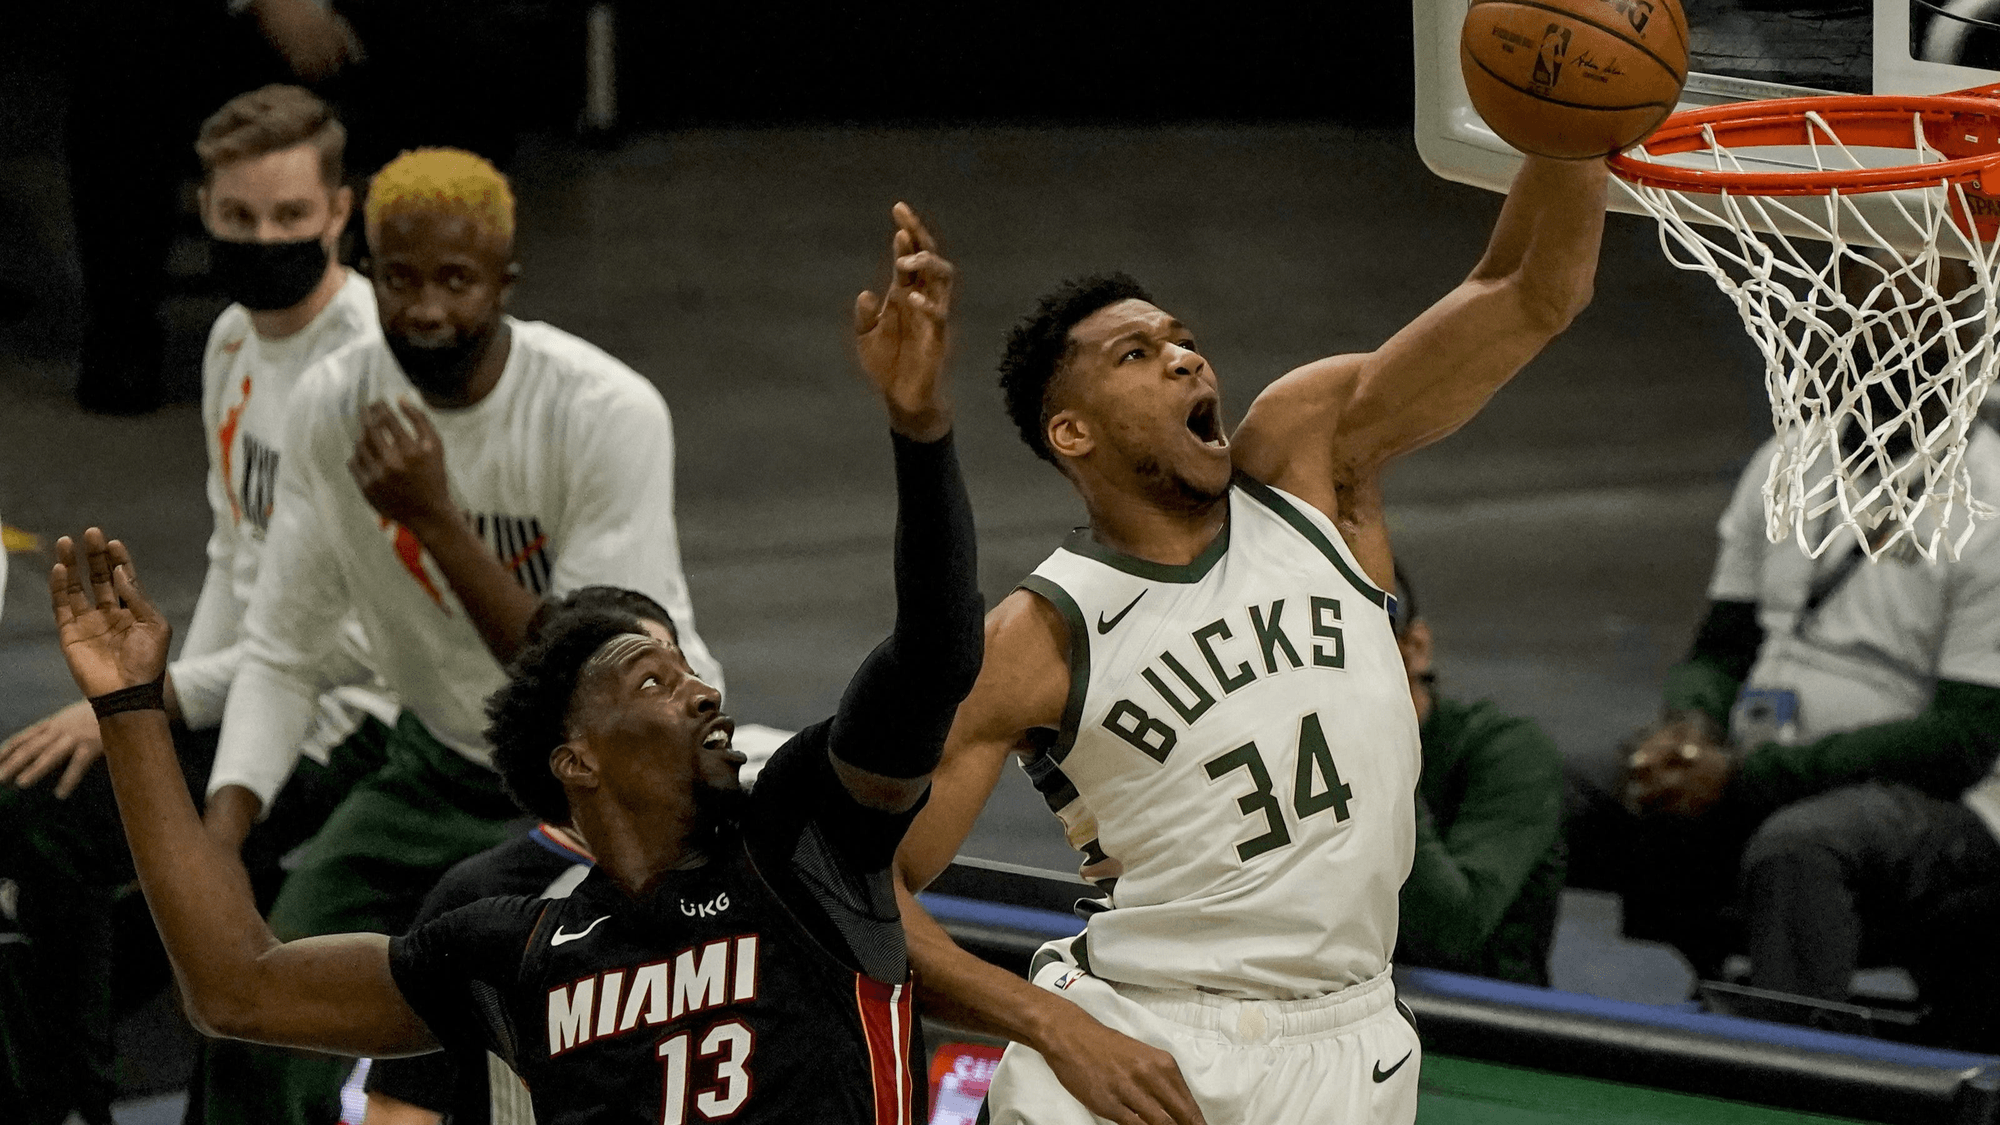 Heat vs Bucks Game 2 Betting Preview: Milwaukee Looks to Take Control of the Series After G1 Victory